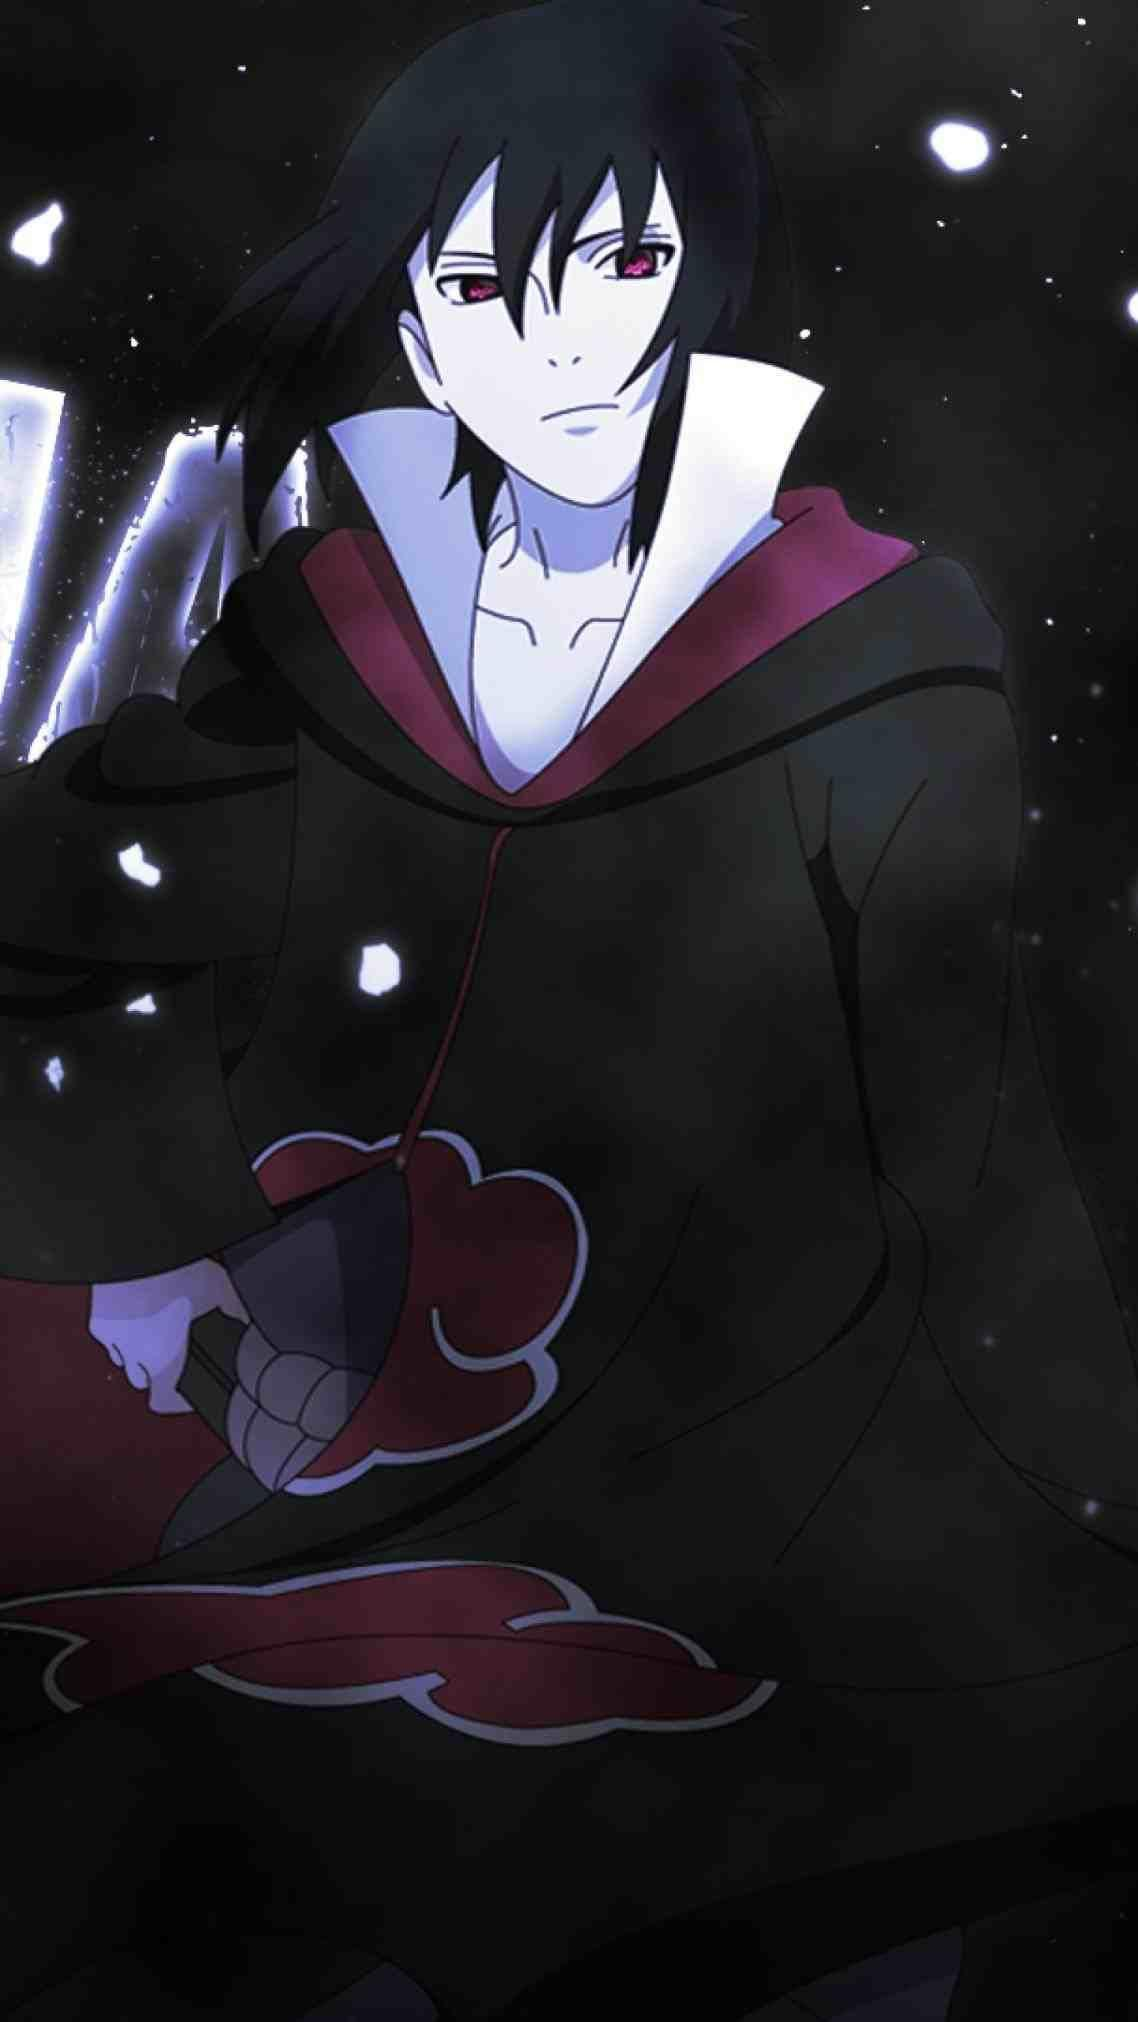 Wallpaper Iphone Sharingan And Rinnegan Eyes Uchiha Hd